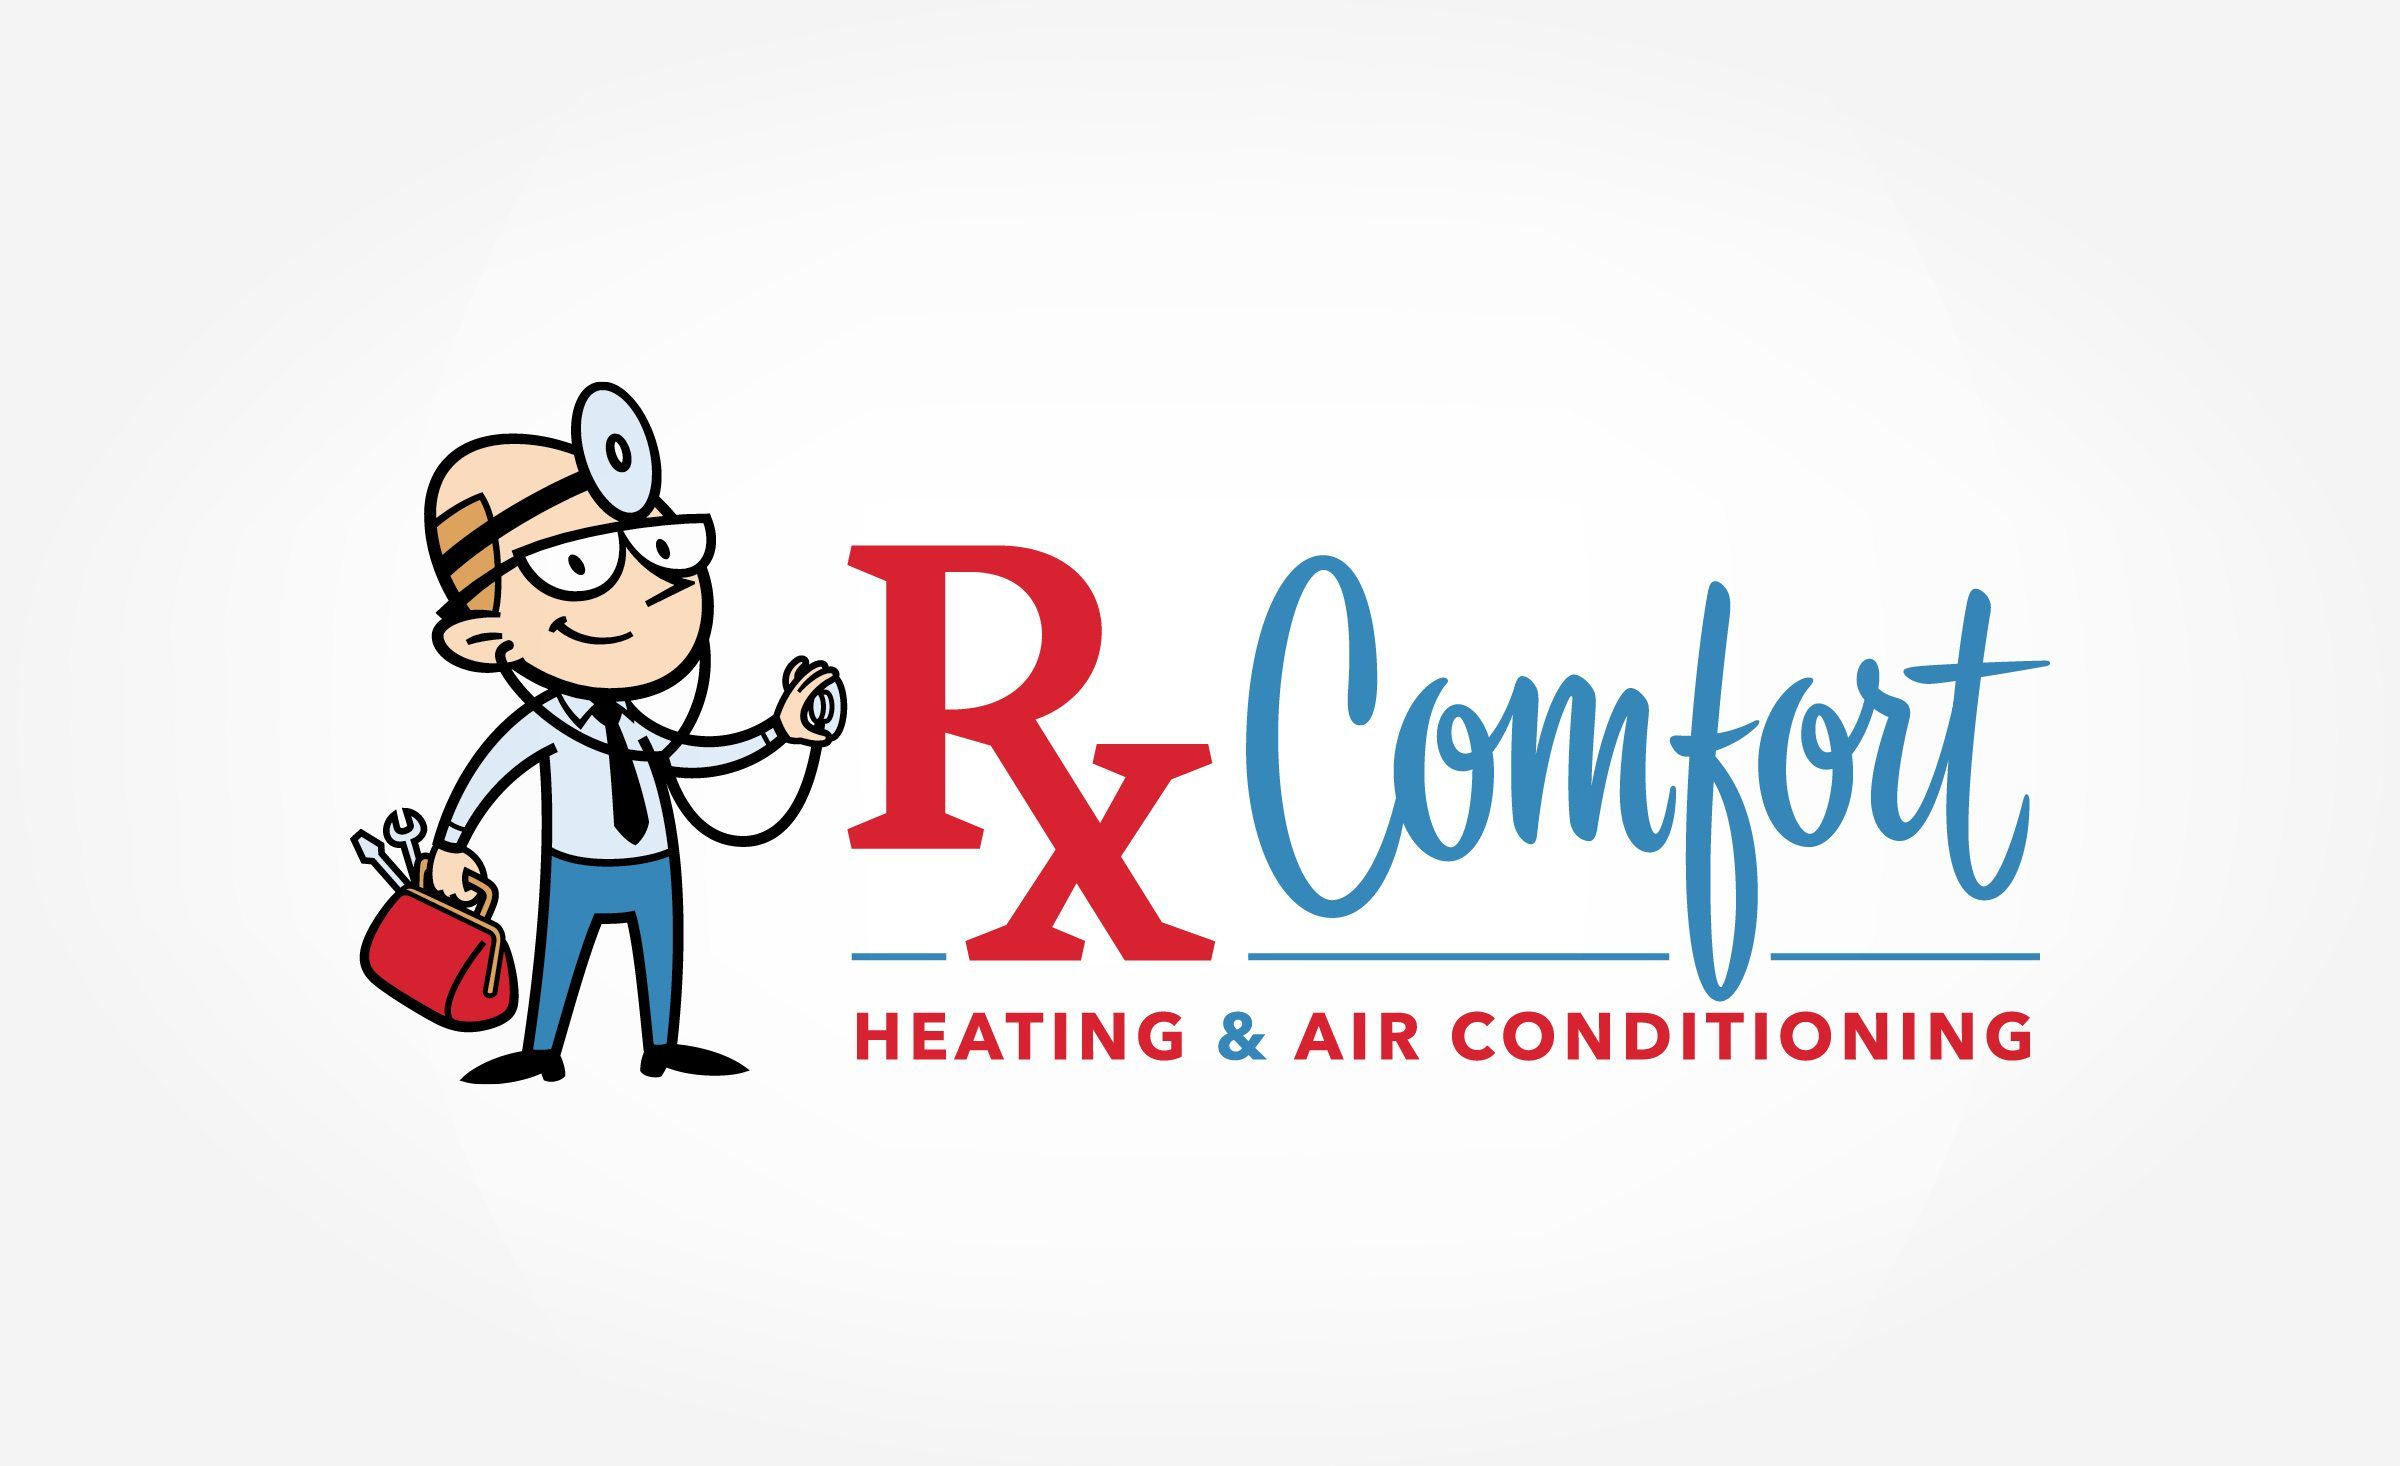 CoolWay Air Conditioning & Heating Retro logo design